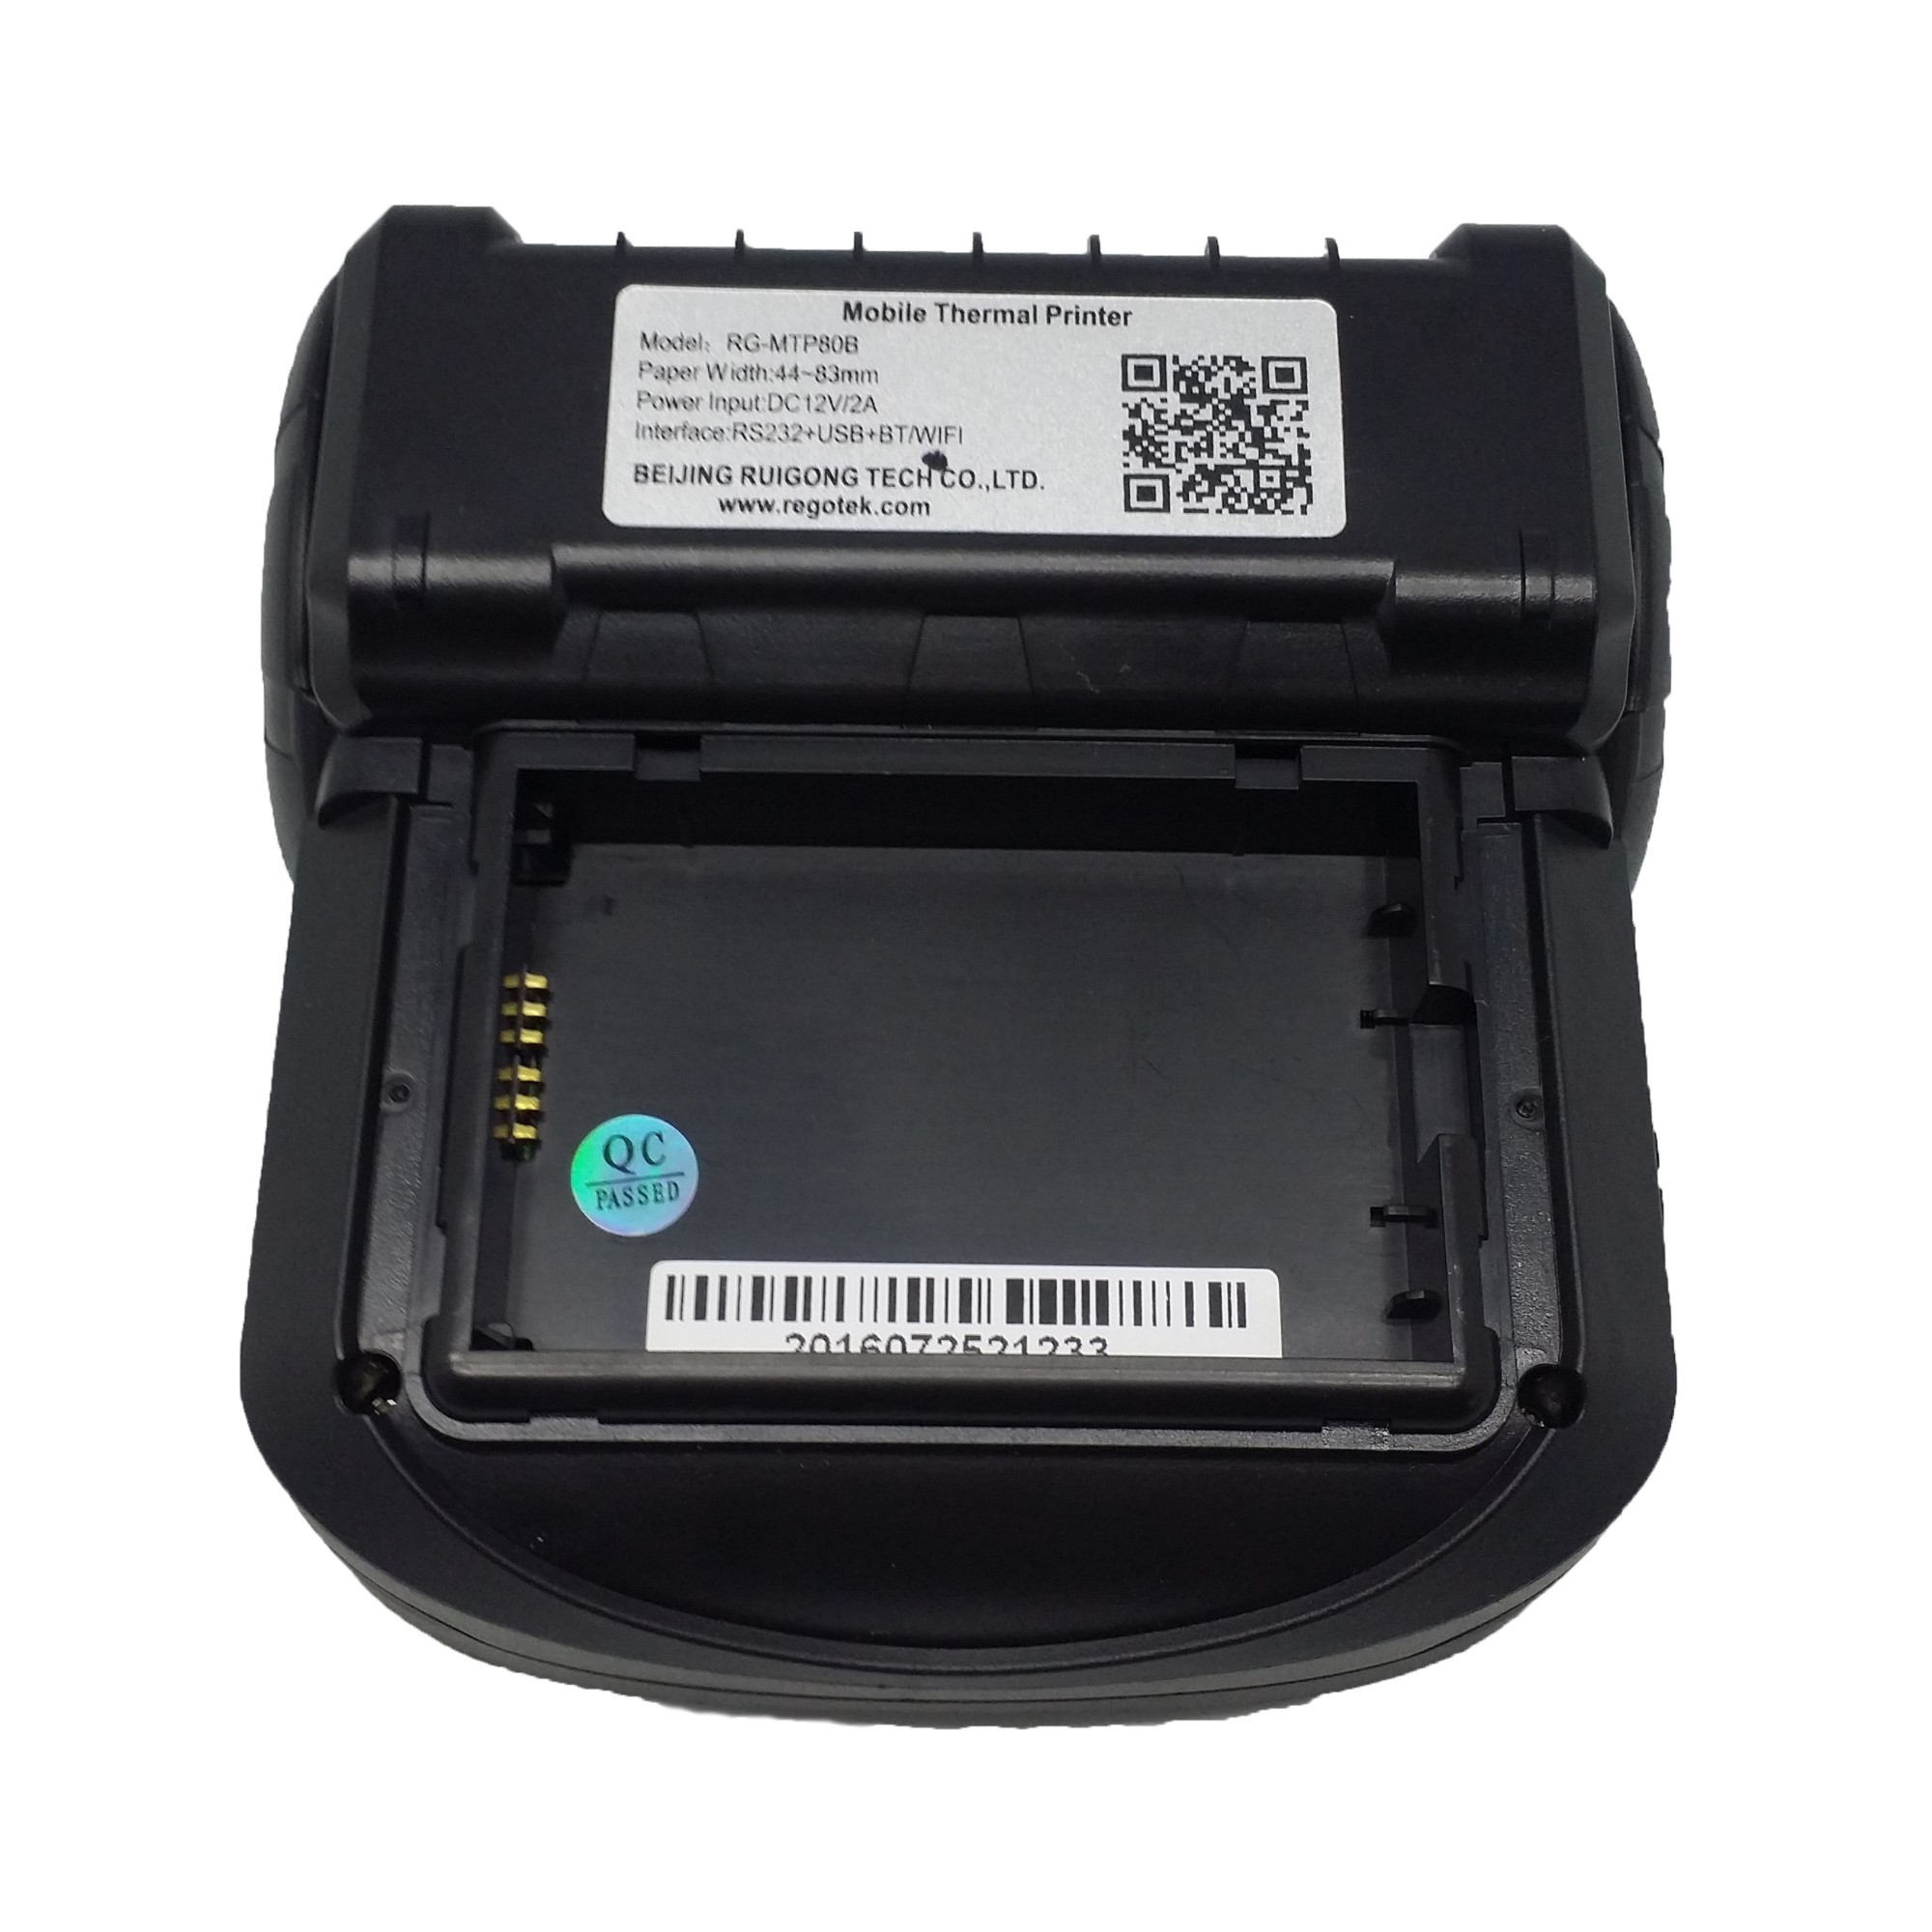 "3"" 5V Thermal Mobile Label Printer RG-MLP80B"